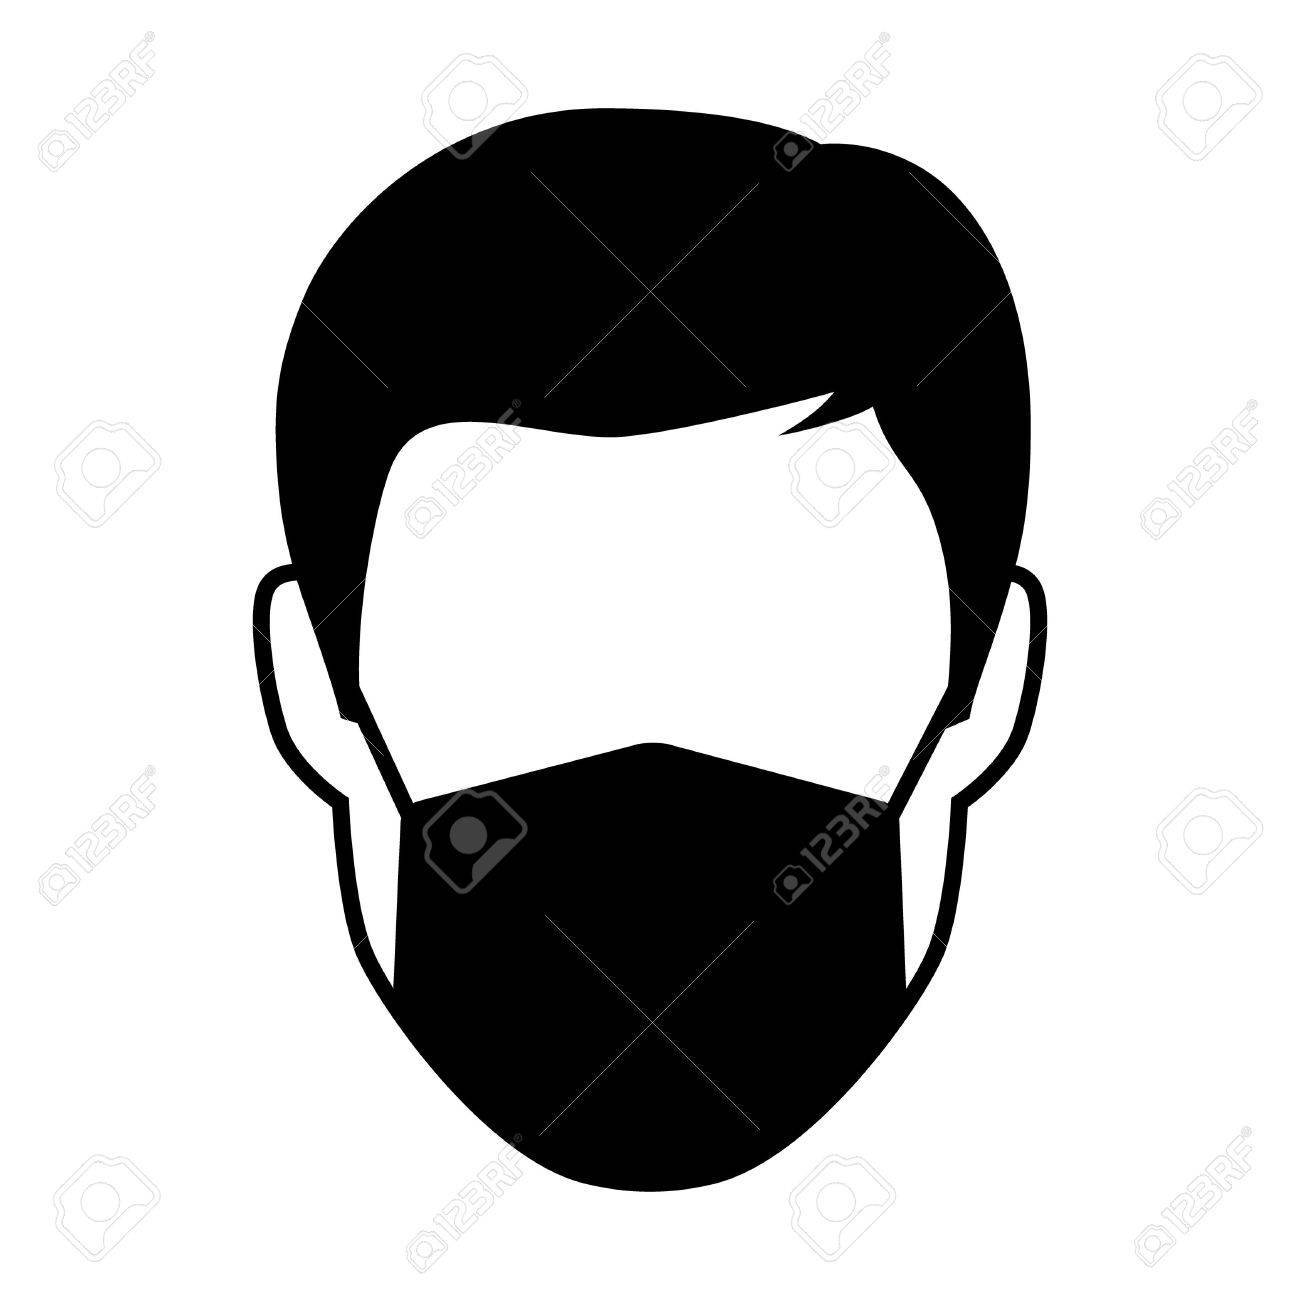 Pollution mask clipart clipart royalty free download Pollution mask clipart 3 » Clipart Portal clipart royalty free download